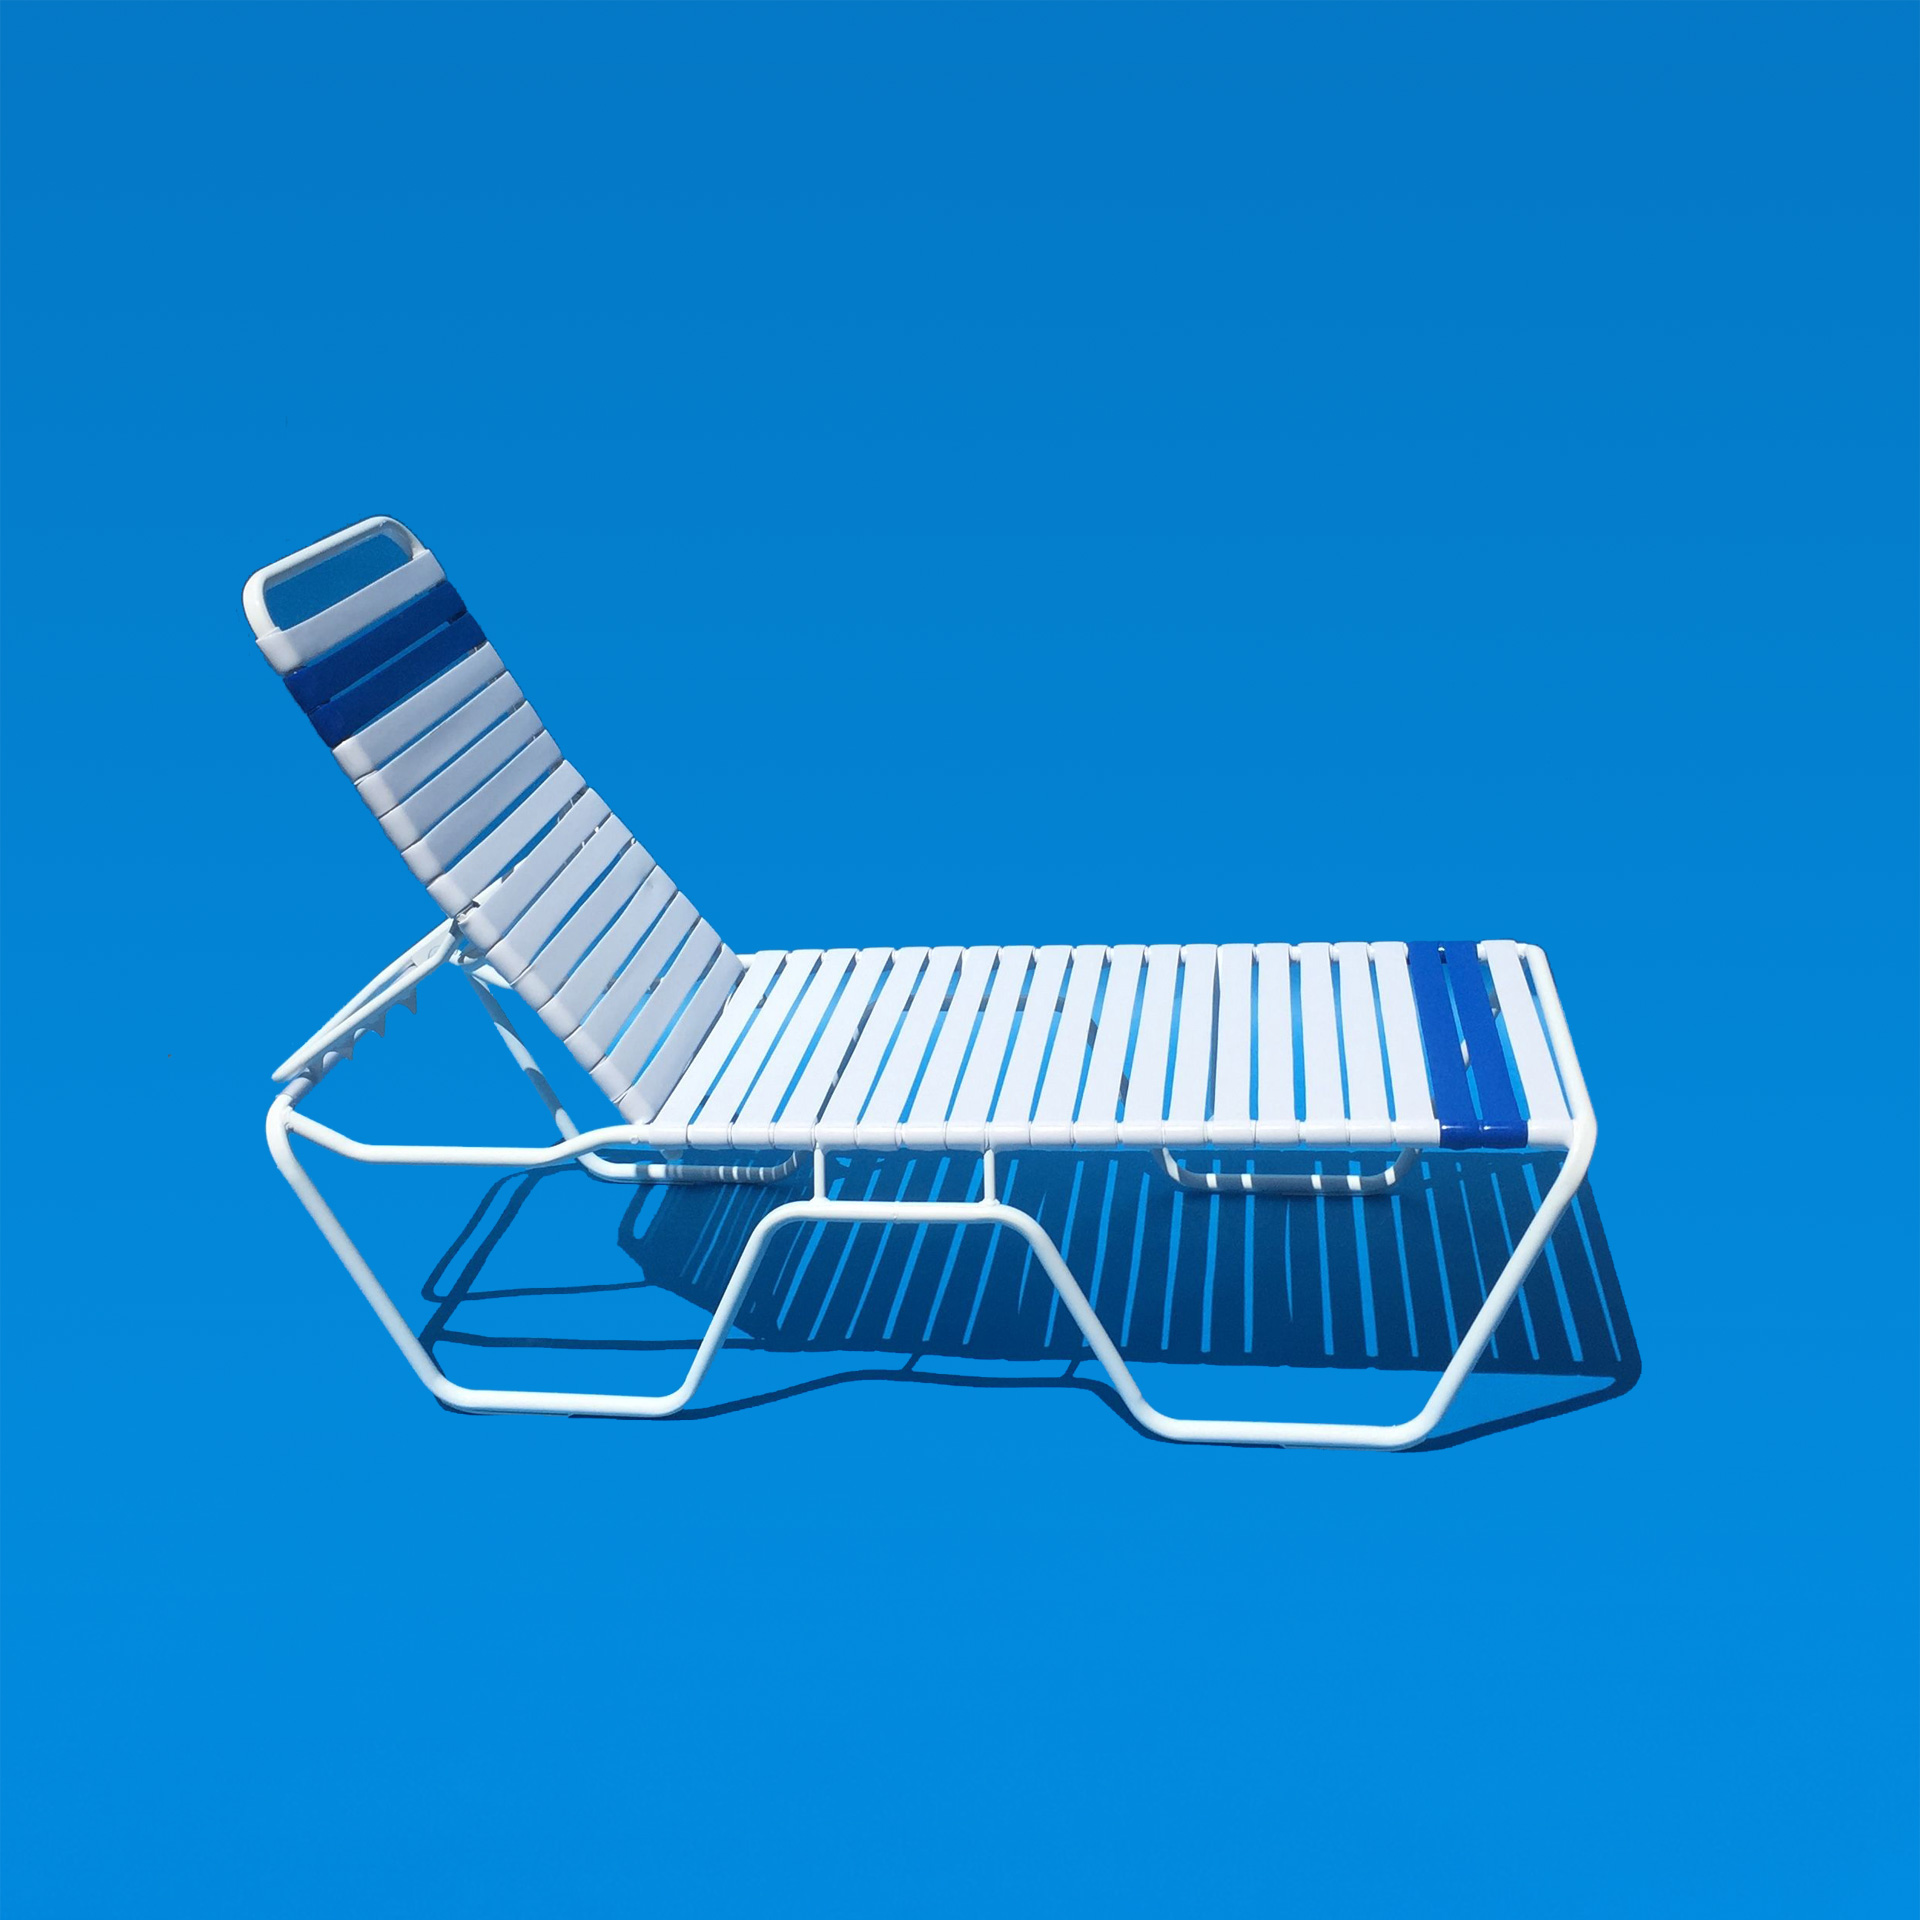 Aluminum Chaise Lounge 16 Tall Patio Furniture By Dr Strap